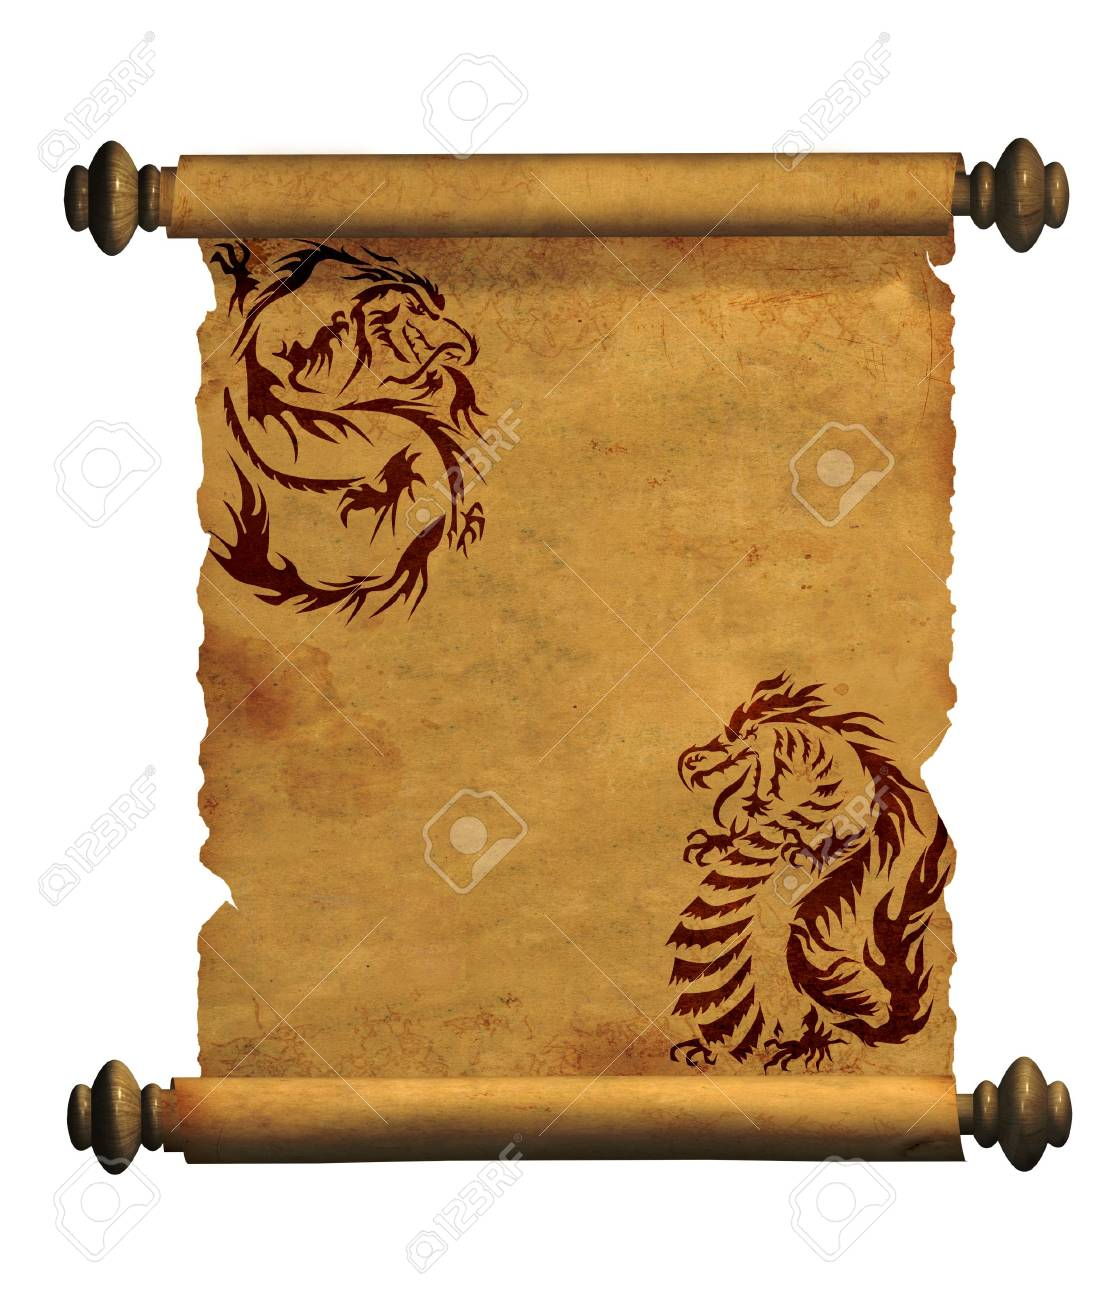 Sheet of ancient parchment with the image of dragons Stock Photo - 6243833